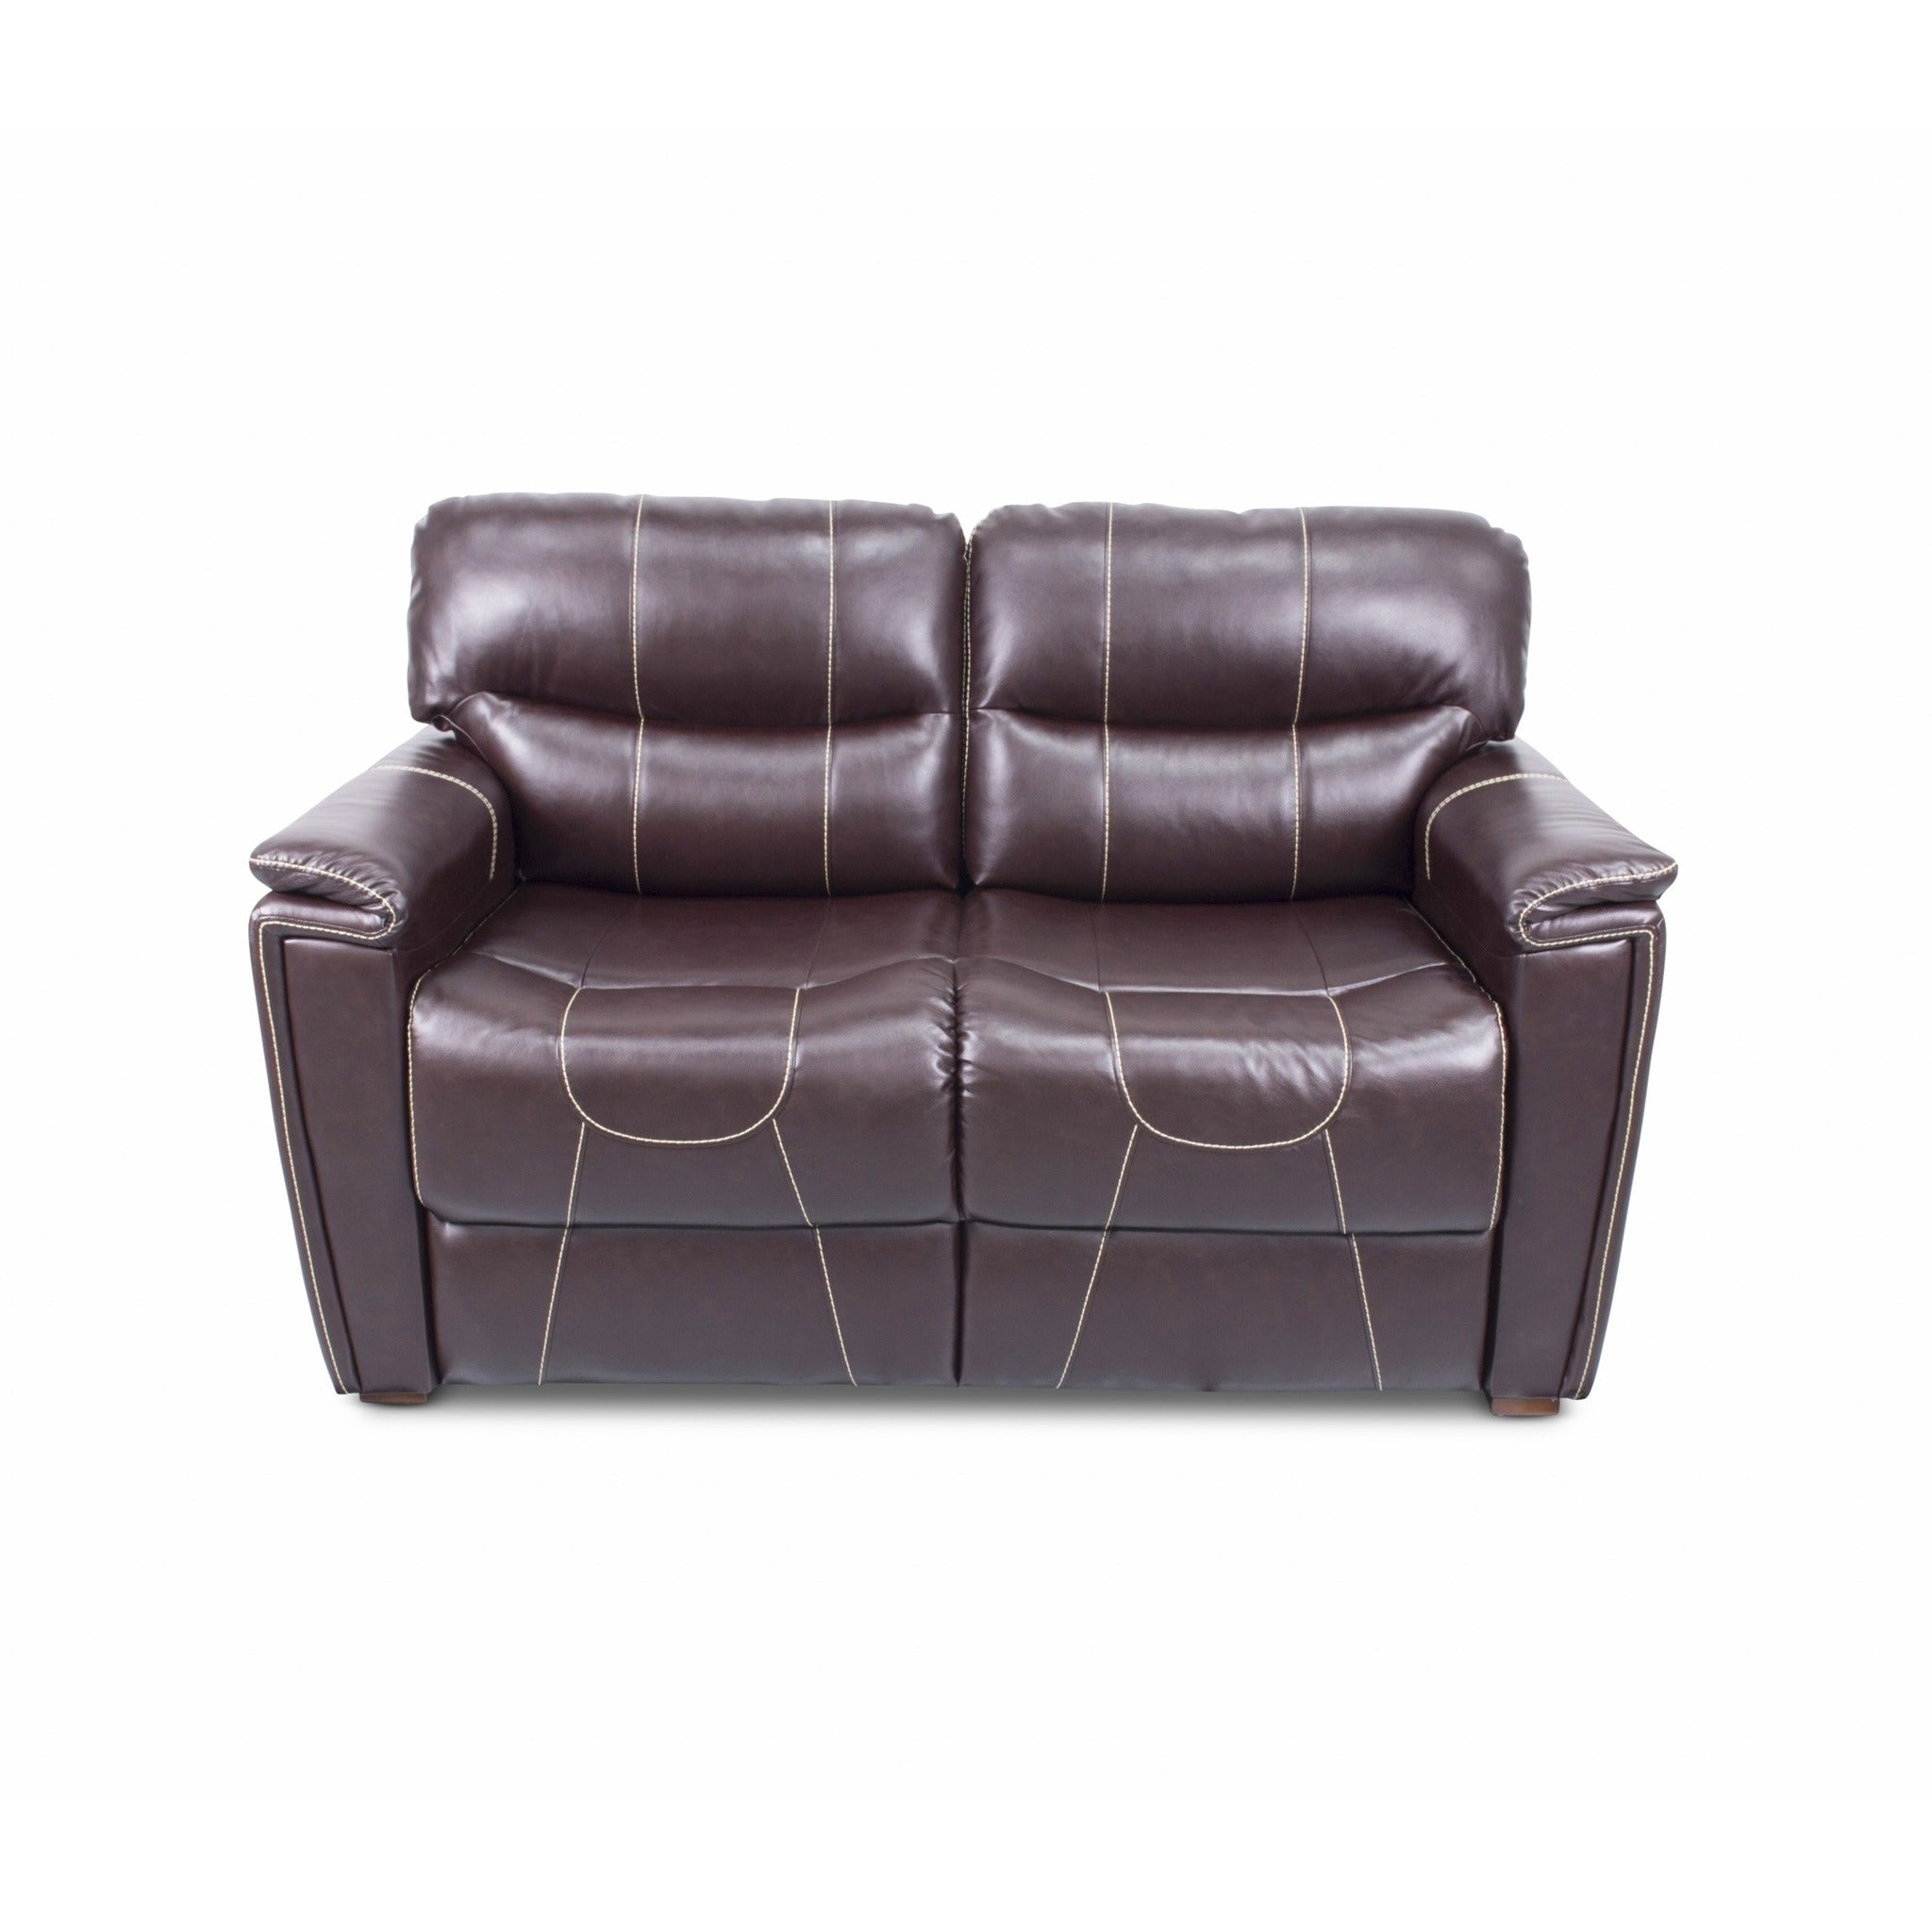 "Lippert 380400 68"" Trifold Sofa in Jaleco Chocolate"